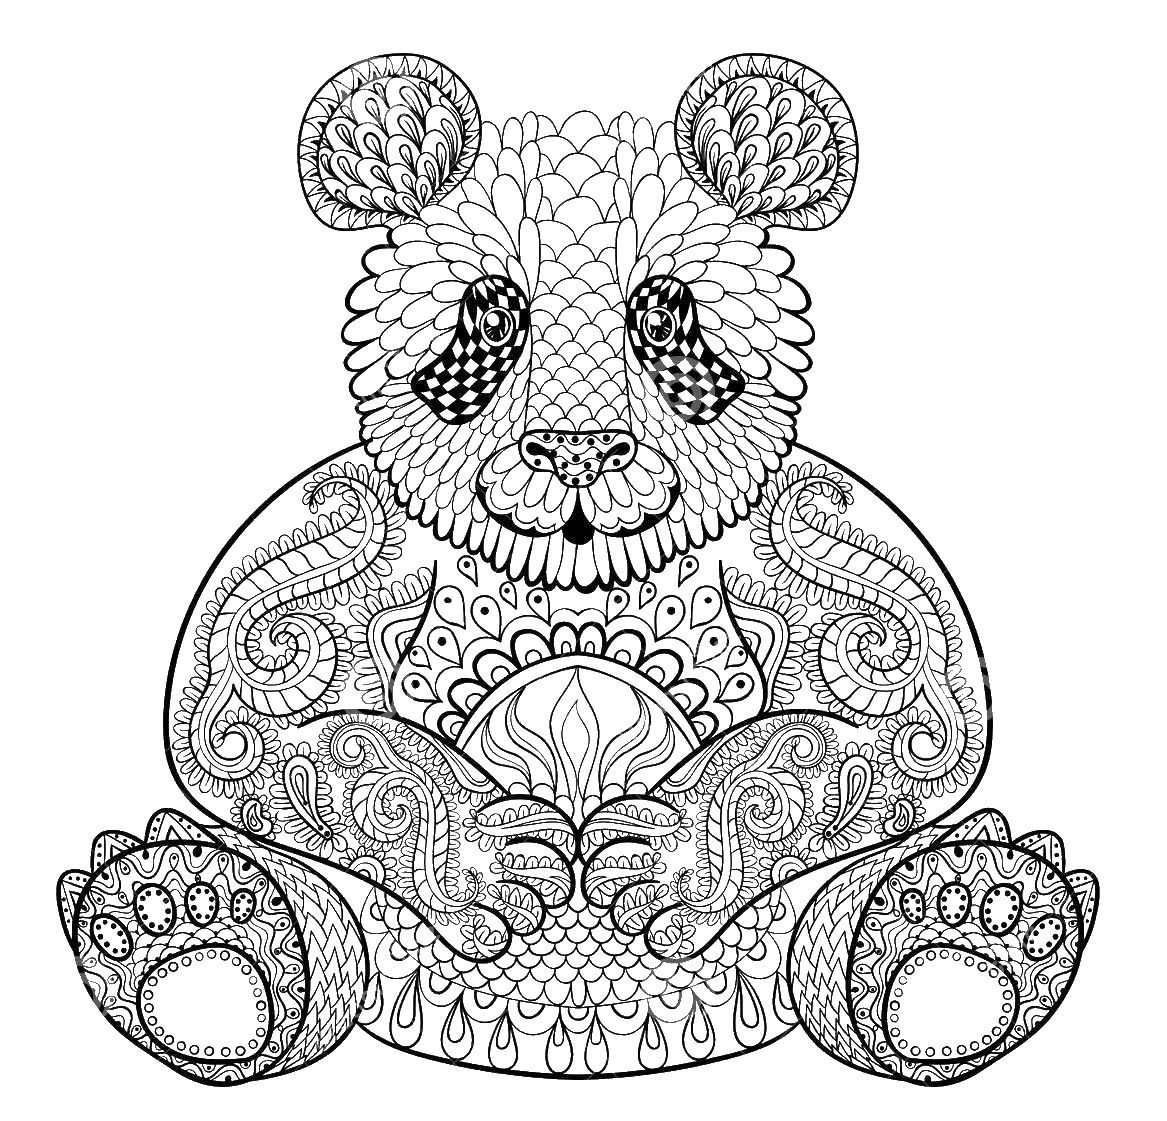 Adult Coloring Pages Panda Adult Coloring Pages And Zentangled Art